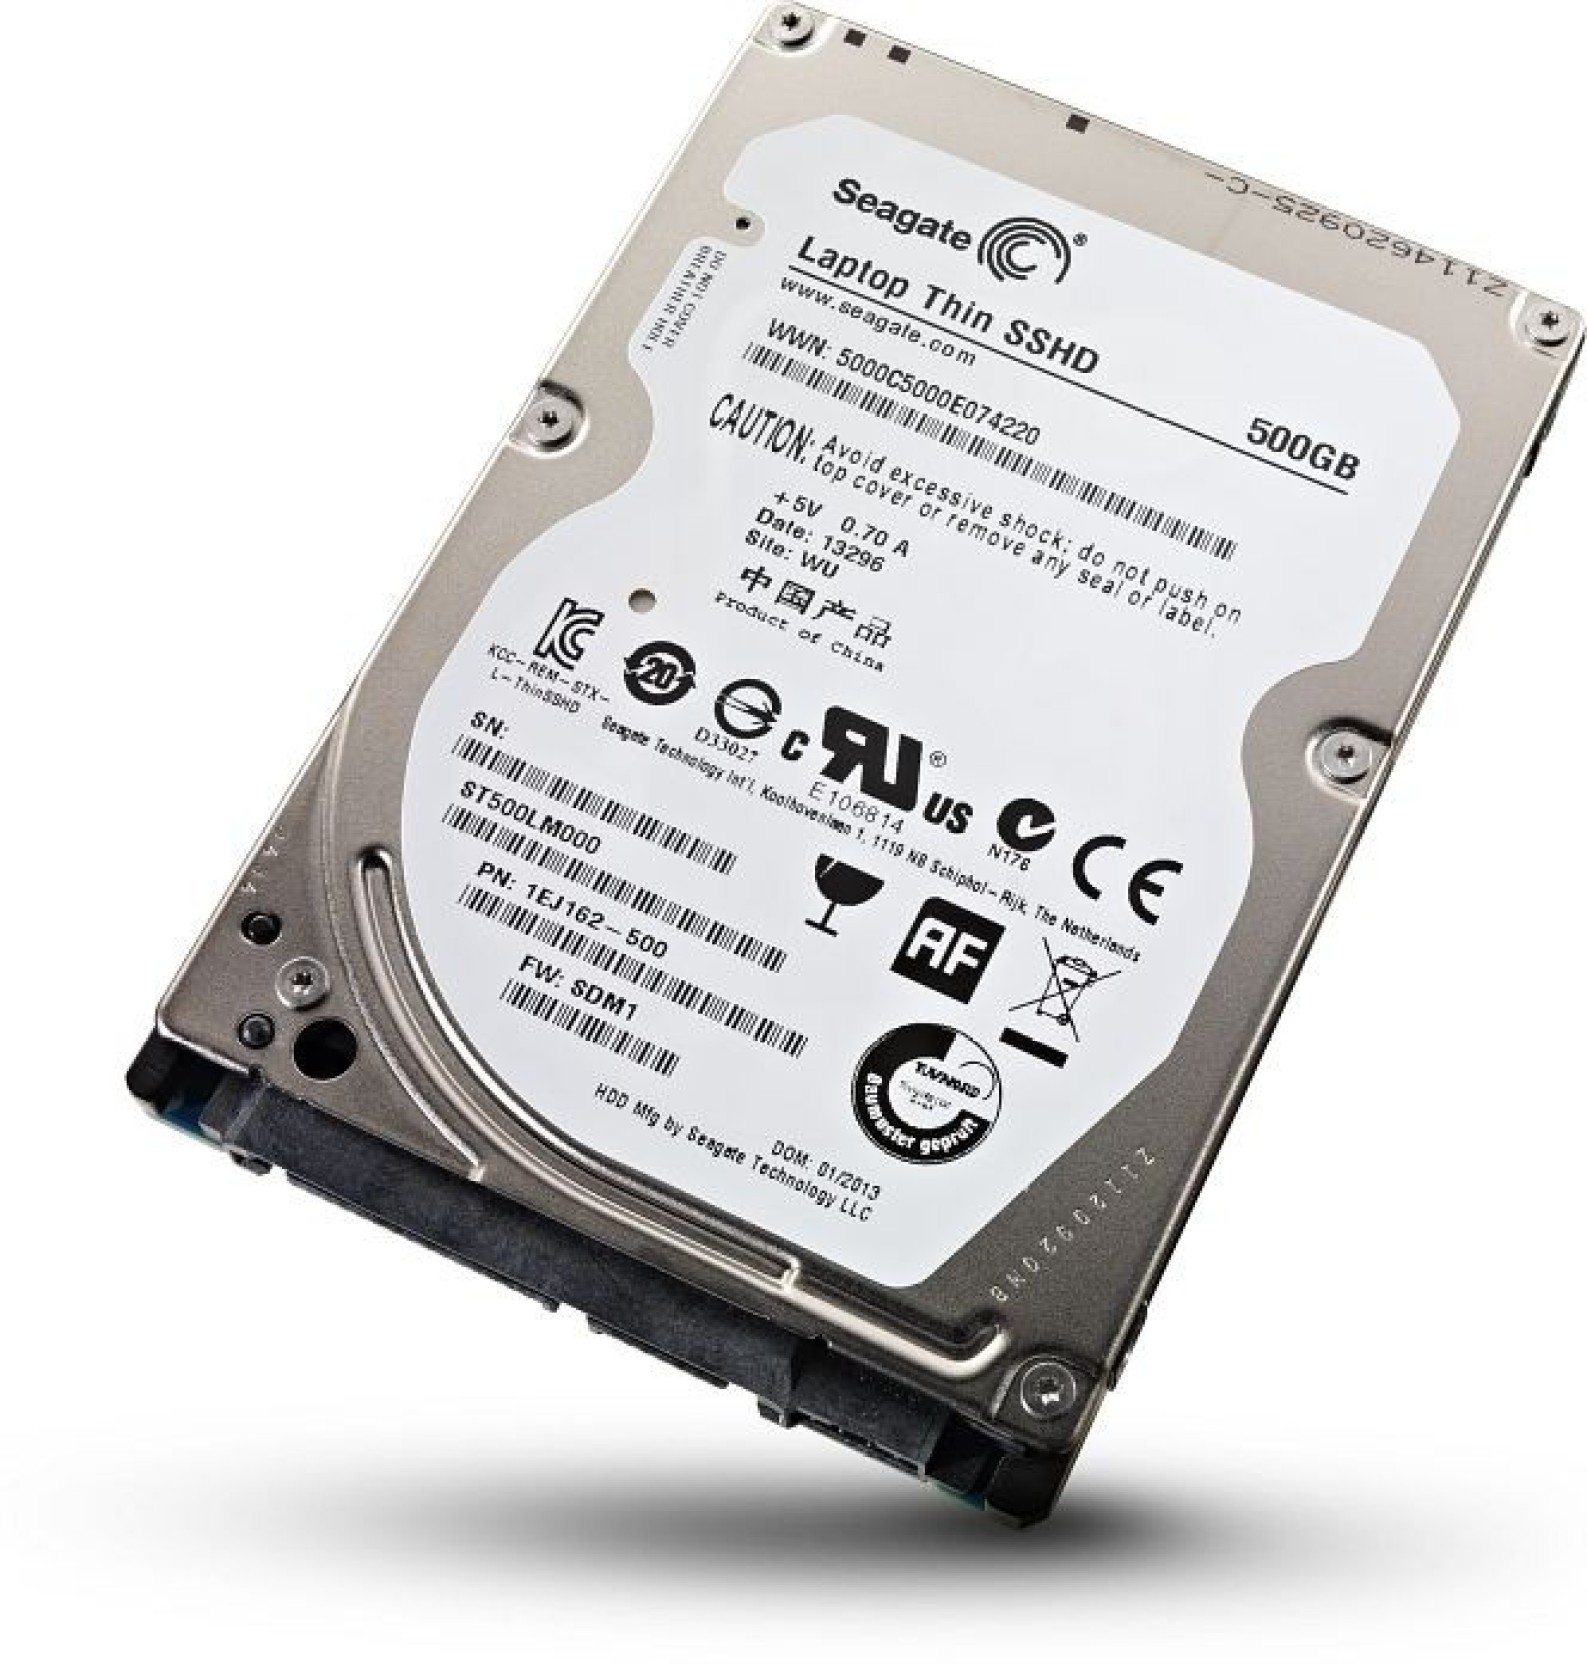 Promo Hardisk Pc 500gb Seagate Termurah 2018 Internal Solid State Hybrid Drive 7 Mm Thickness 500 Gb Laptop Share